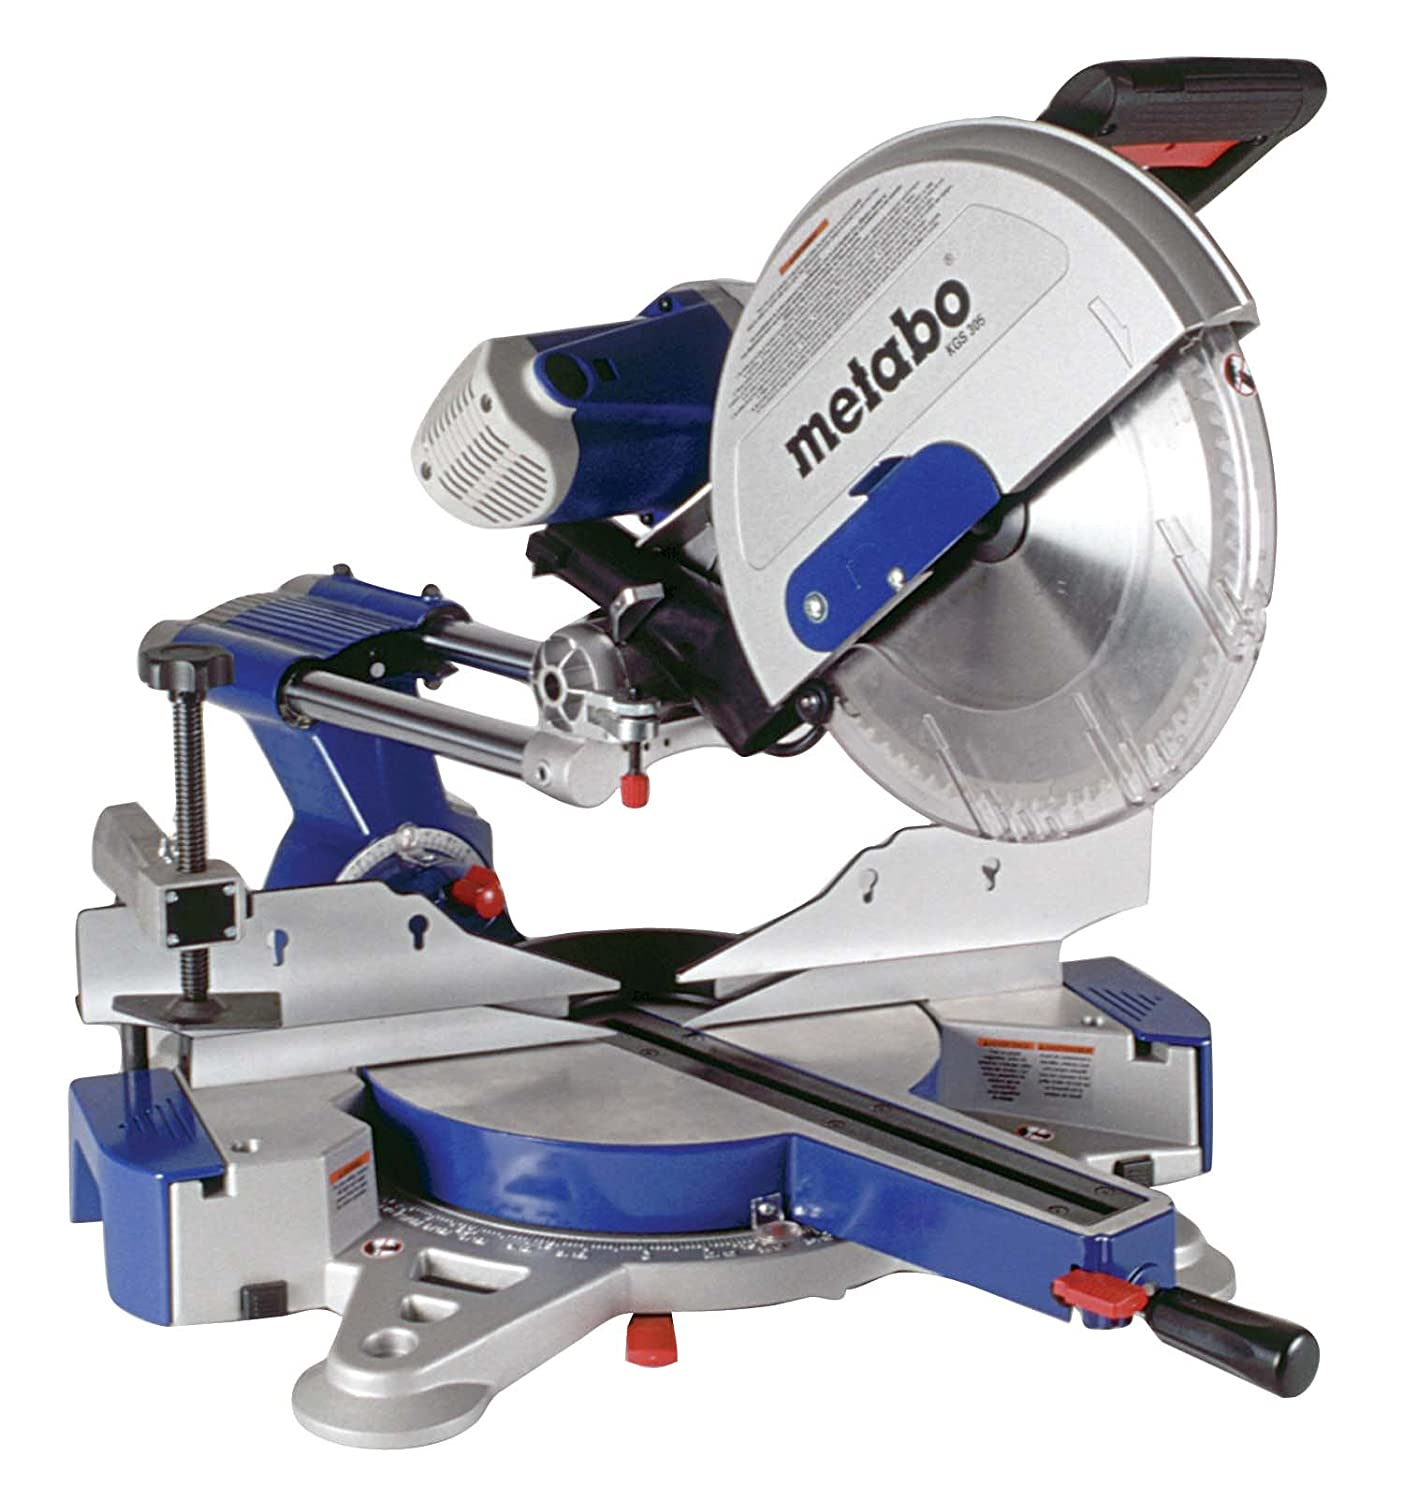 Top 10 best compound miter saws reviews 2016 2017 on flipboard